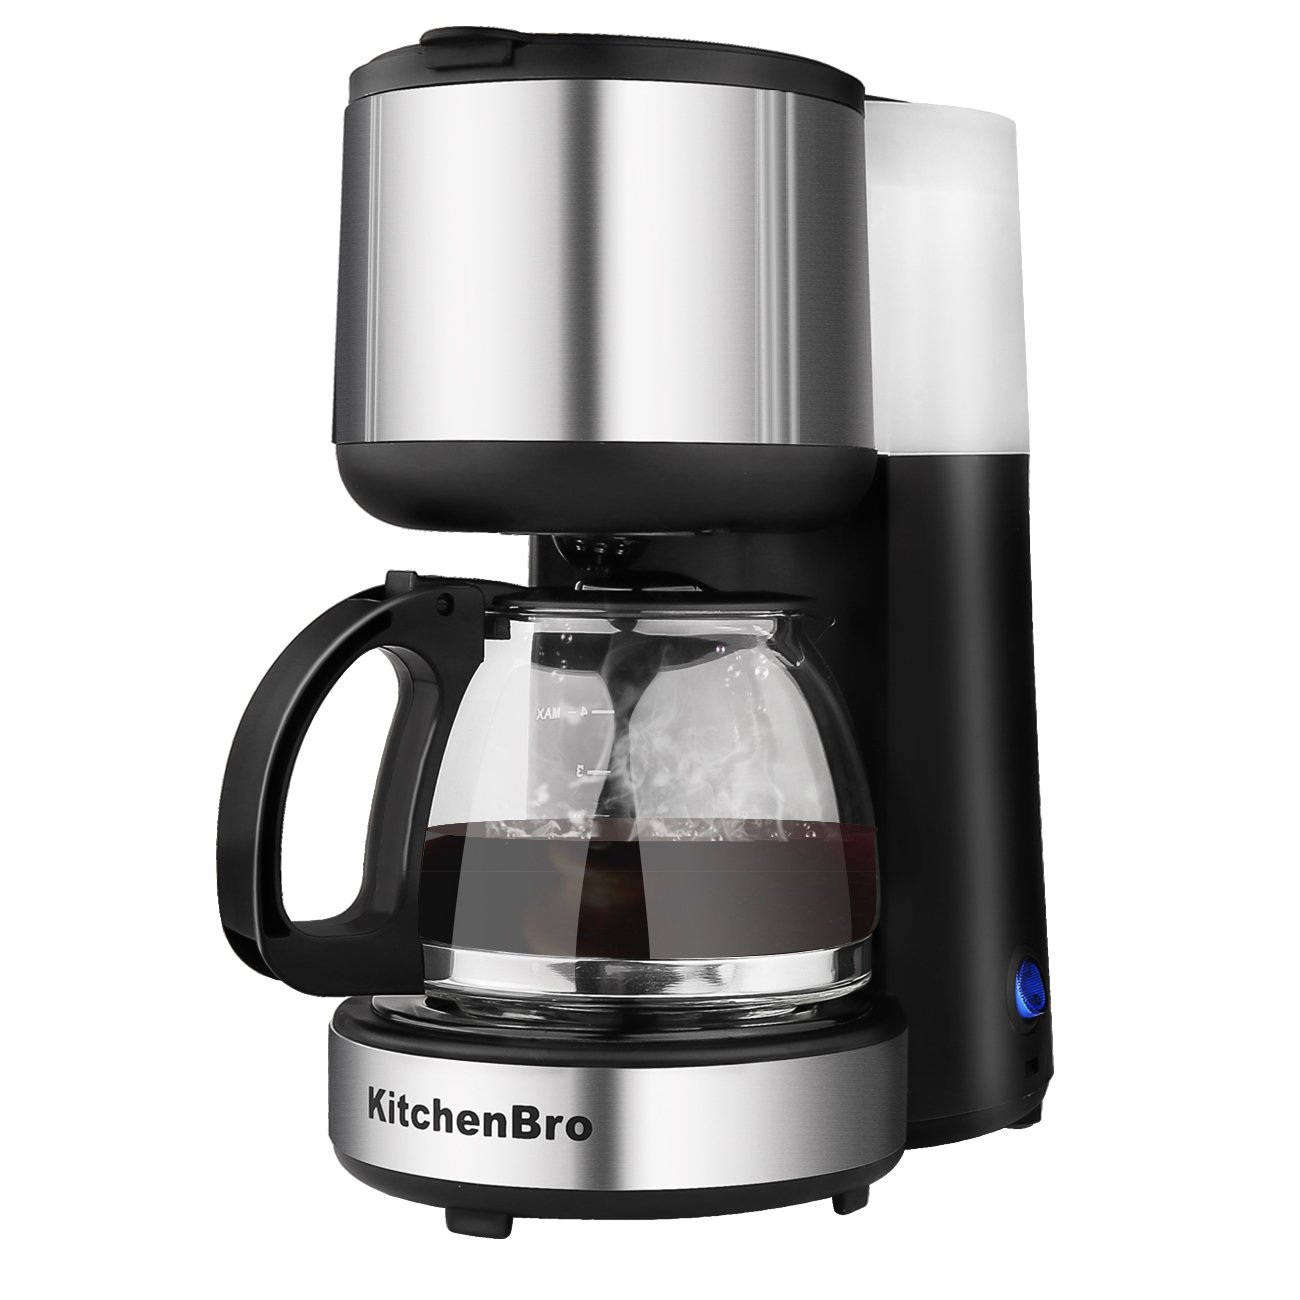 Coffee Maker 4 Cup Stainless Steel with Warming Plate by KitchenBro